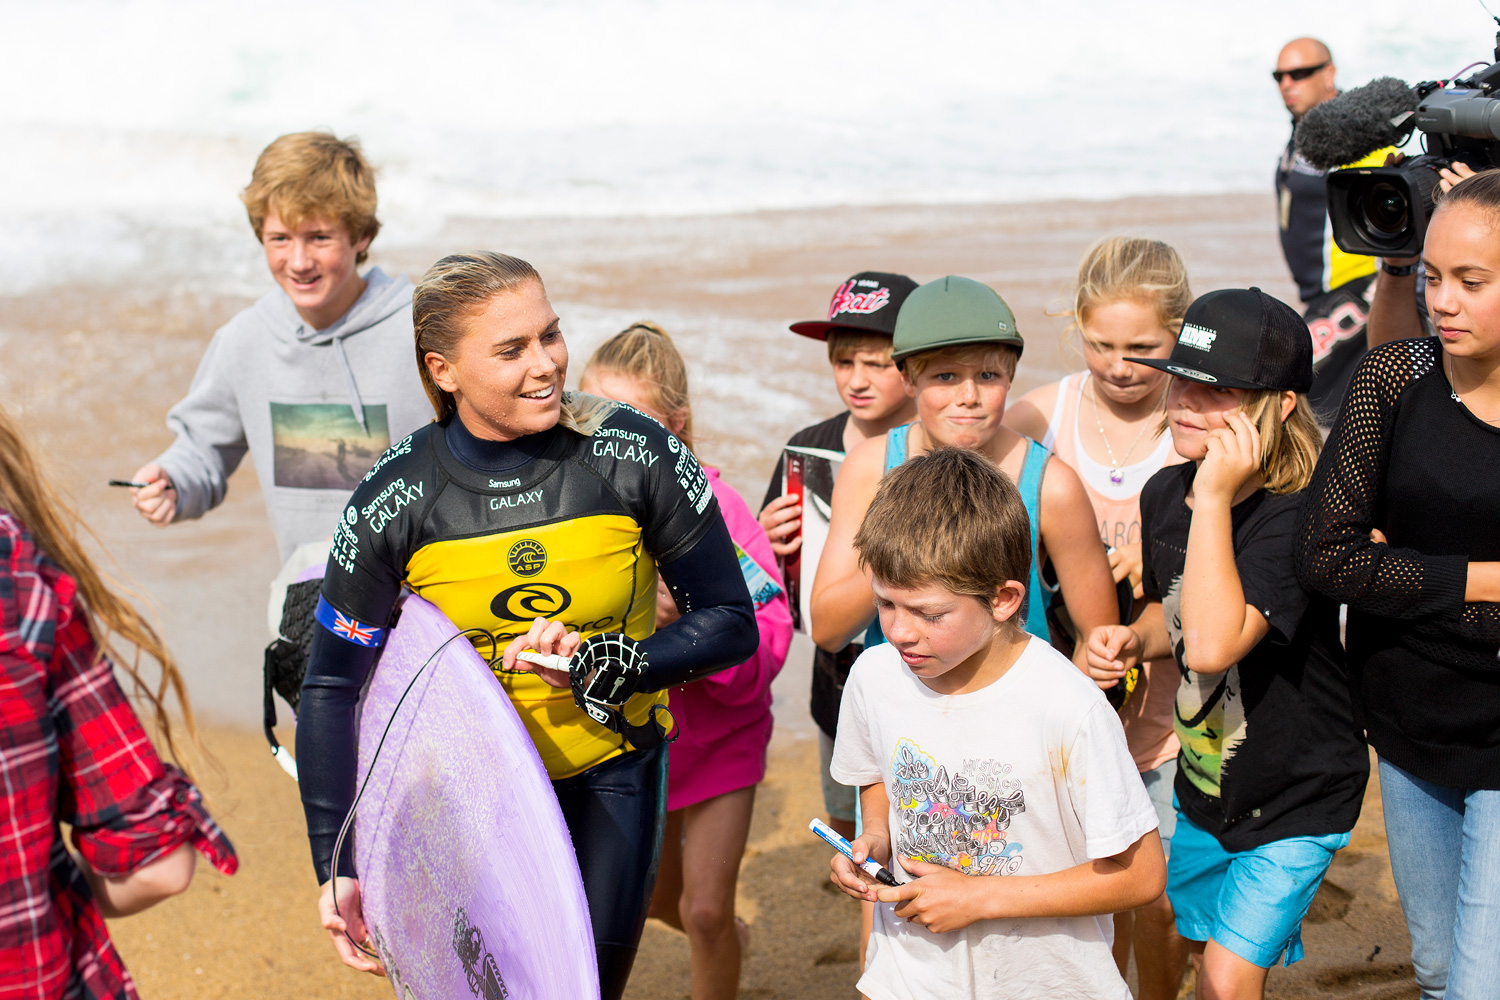 Dimity Stoyle walks off the beach surrounded by fans in Bells Beach, Australia after winning her heat with a 15.76 mark, the highest total of the day.